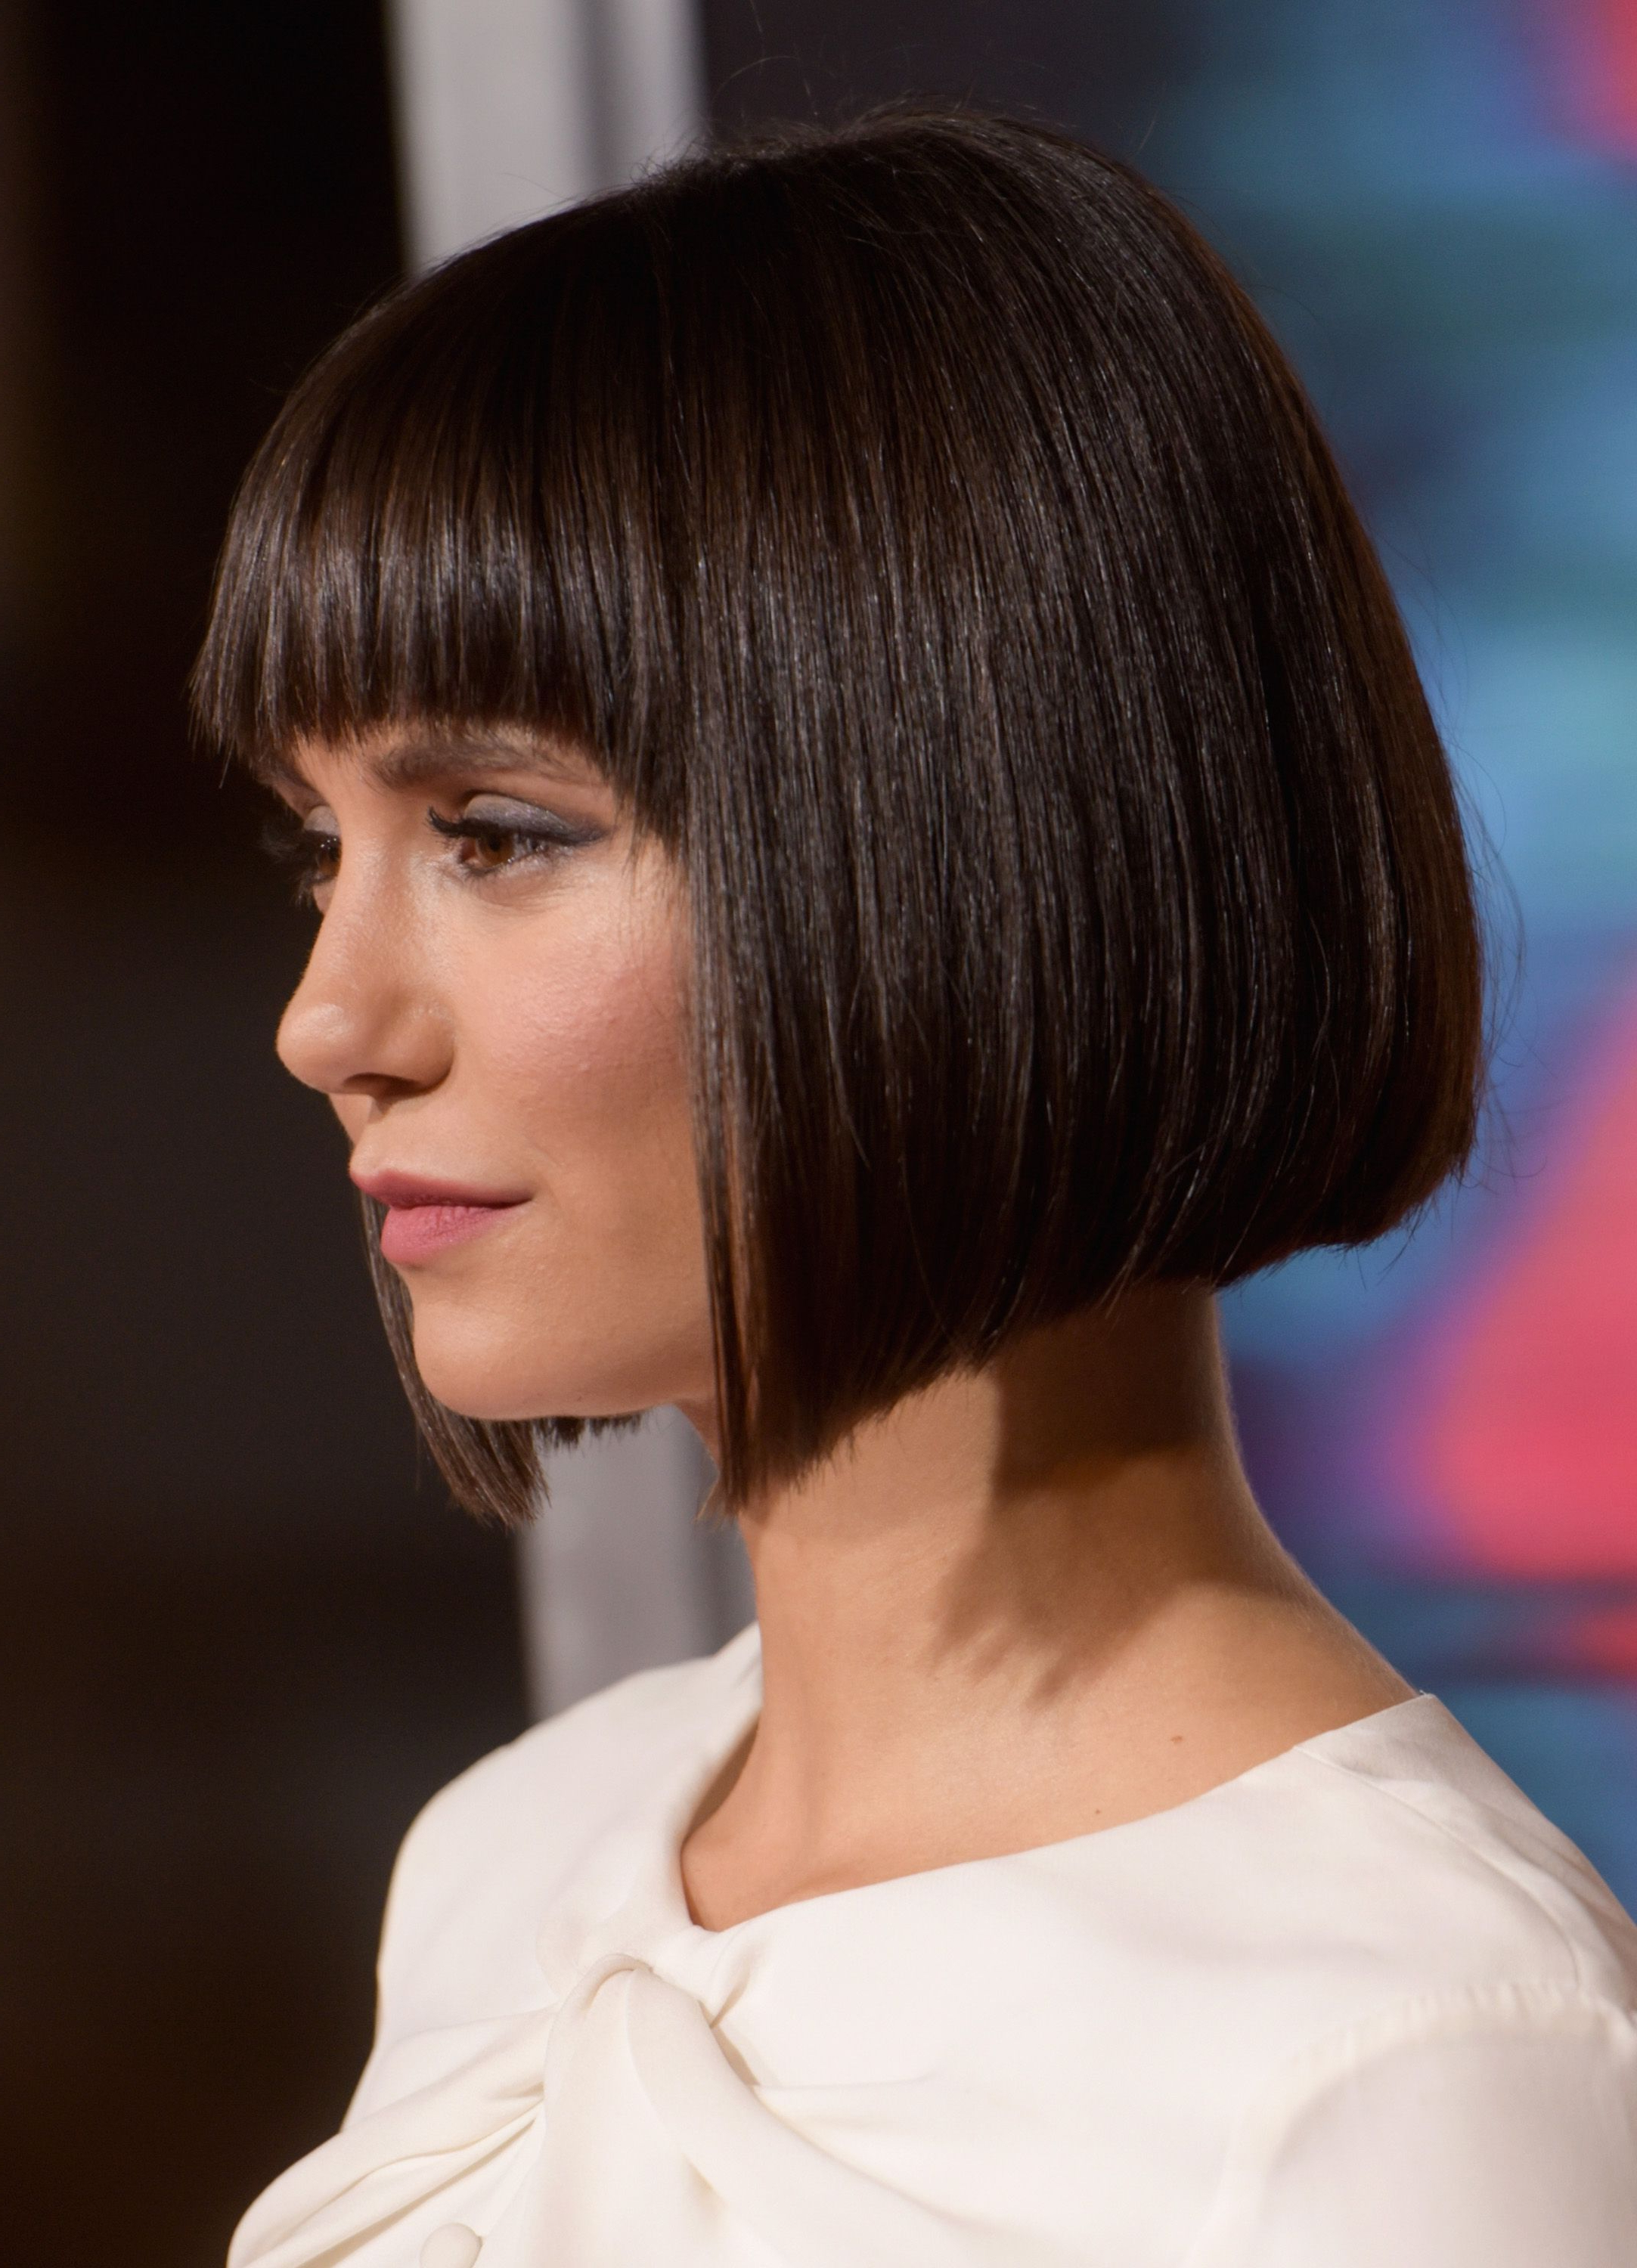 70 Best Bob Styles Of 2019 – Bob Haircuts & Hairstyles For Women With Trendy And Sleek Bob Haircuts (Gallery 9 of 20)